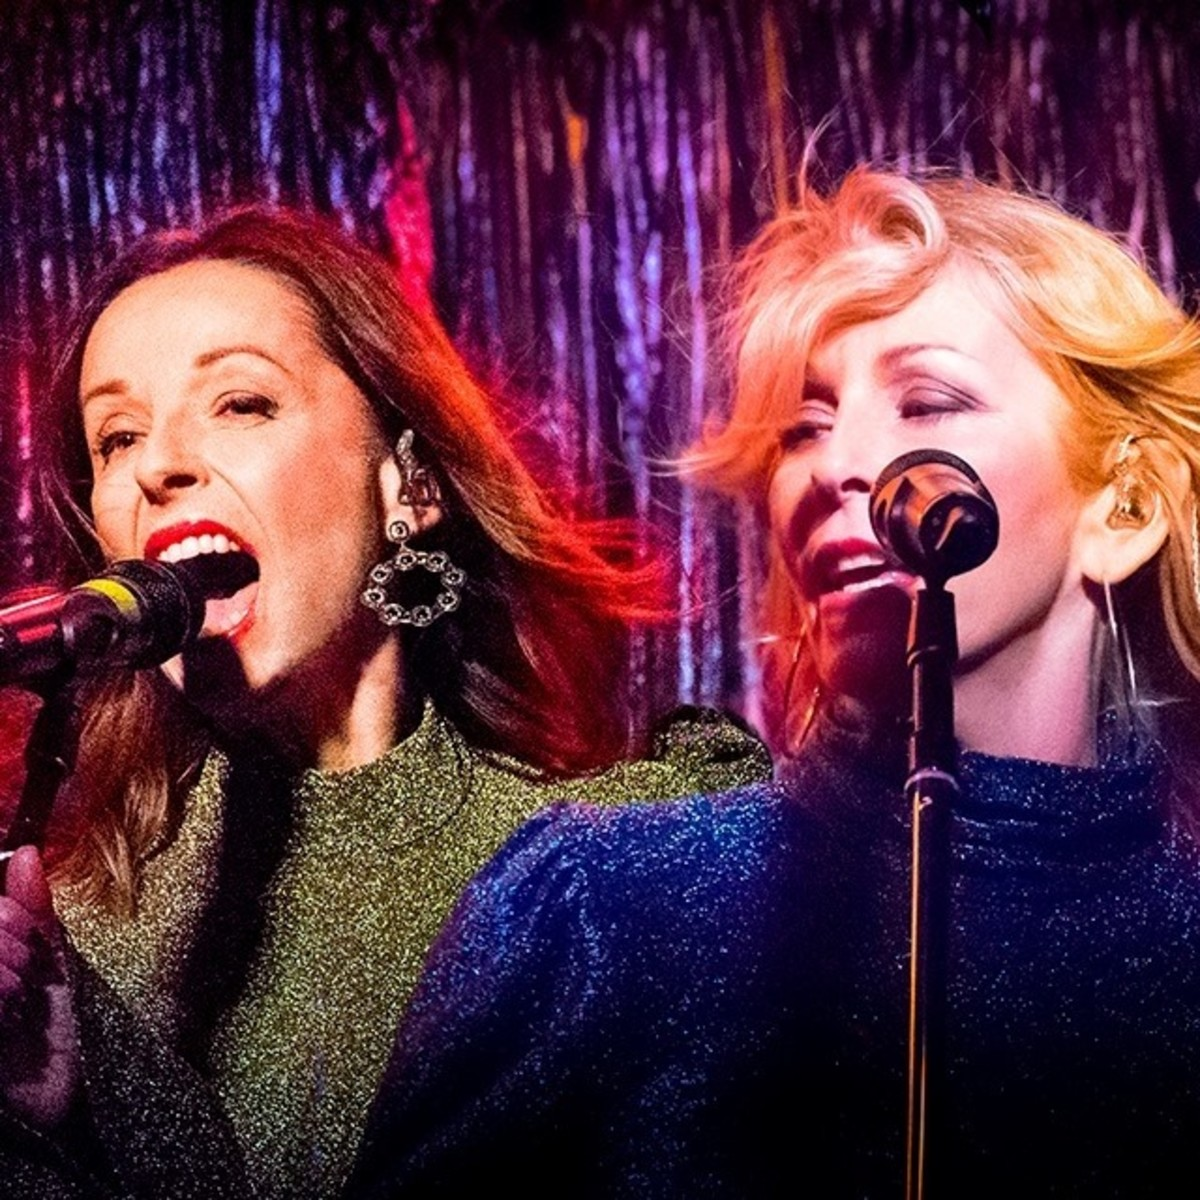 Bananarama original members Keren Woodward and Sara Dallin in 2019. Publicity Photo @TheBananarama.